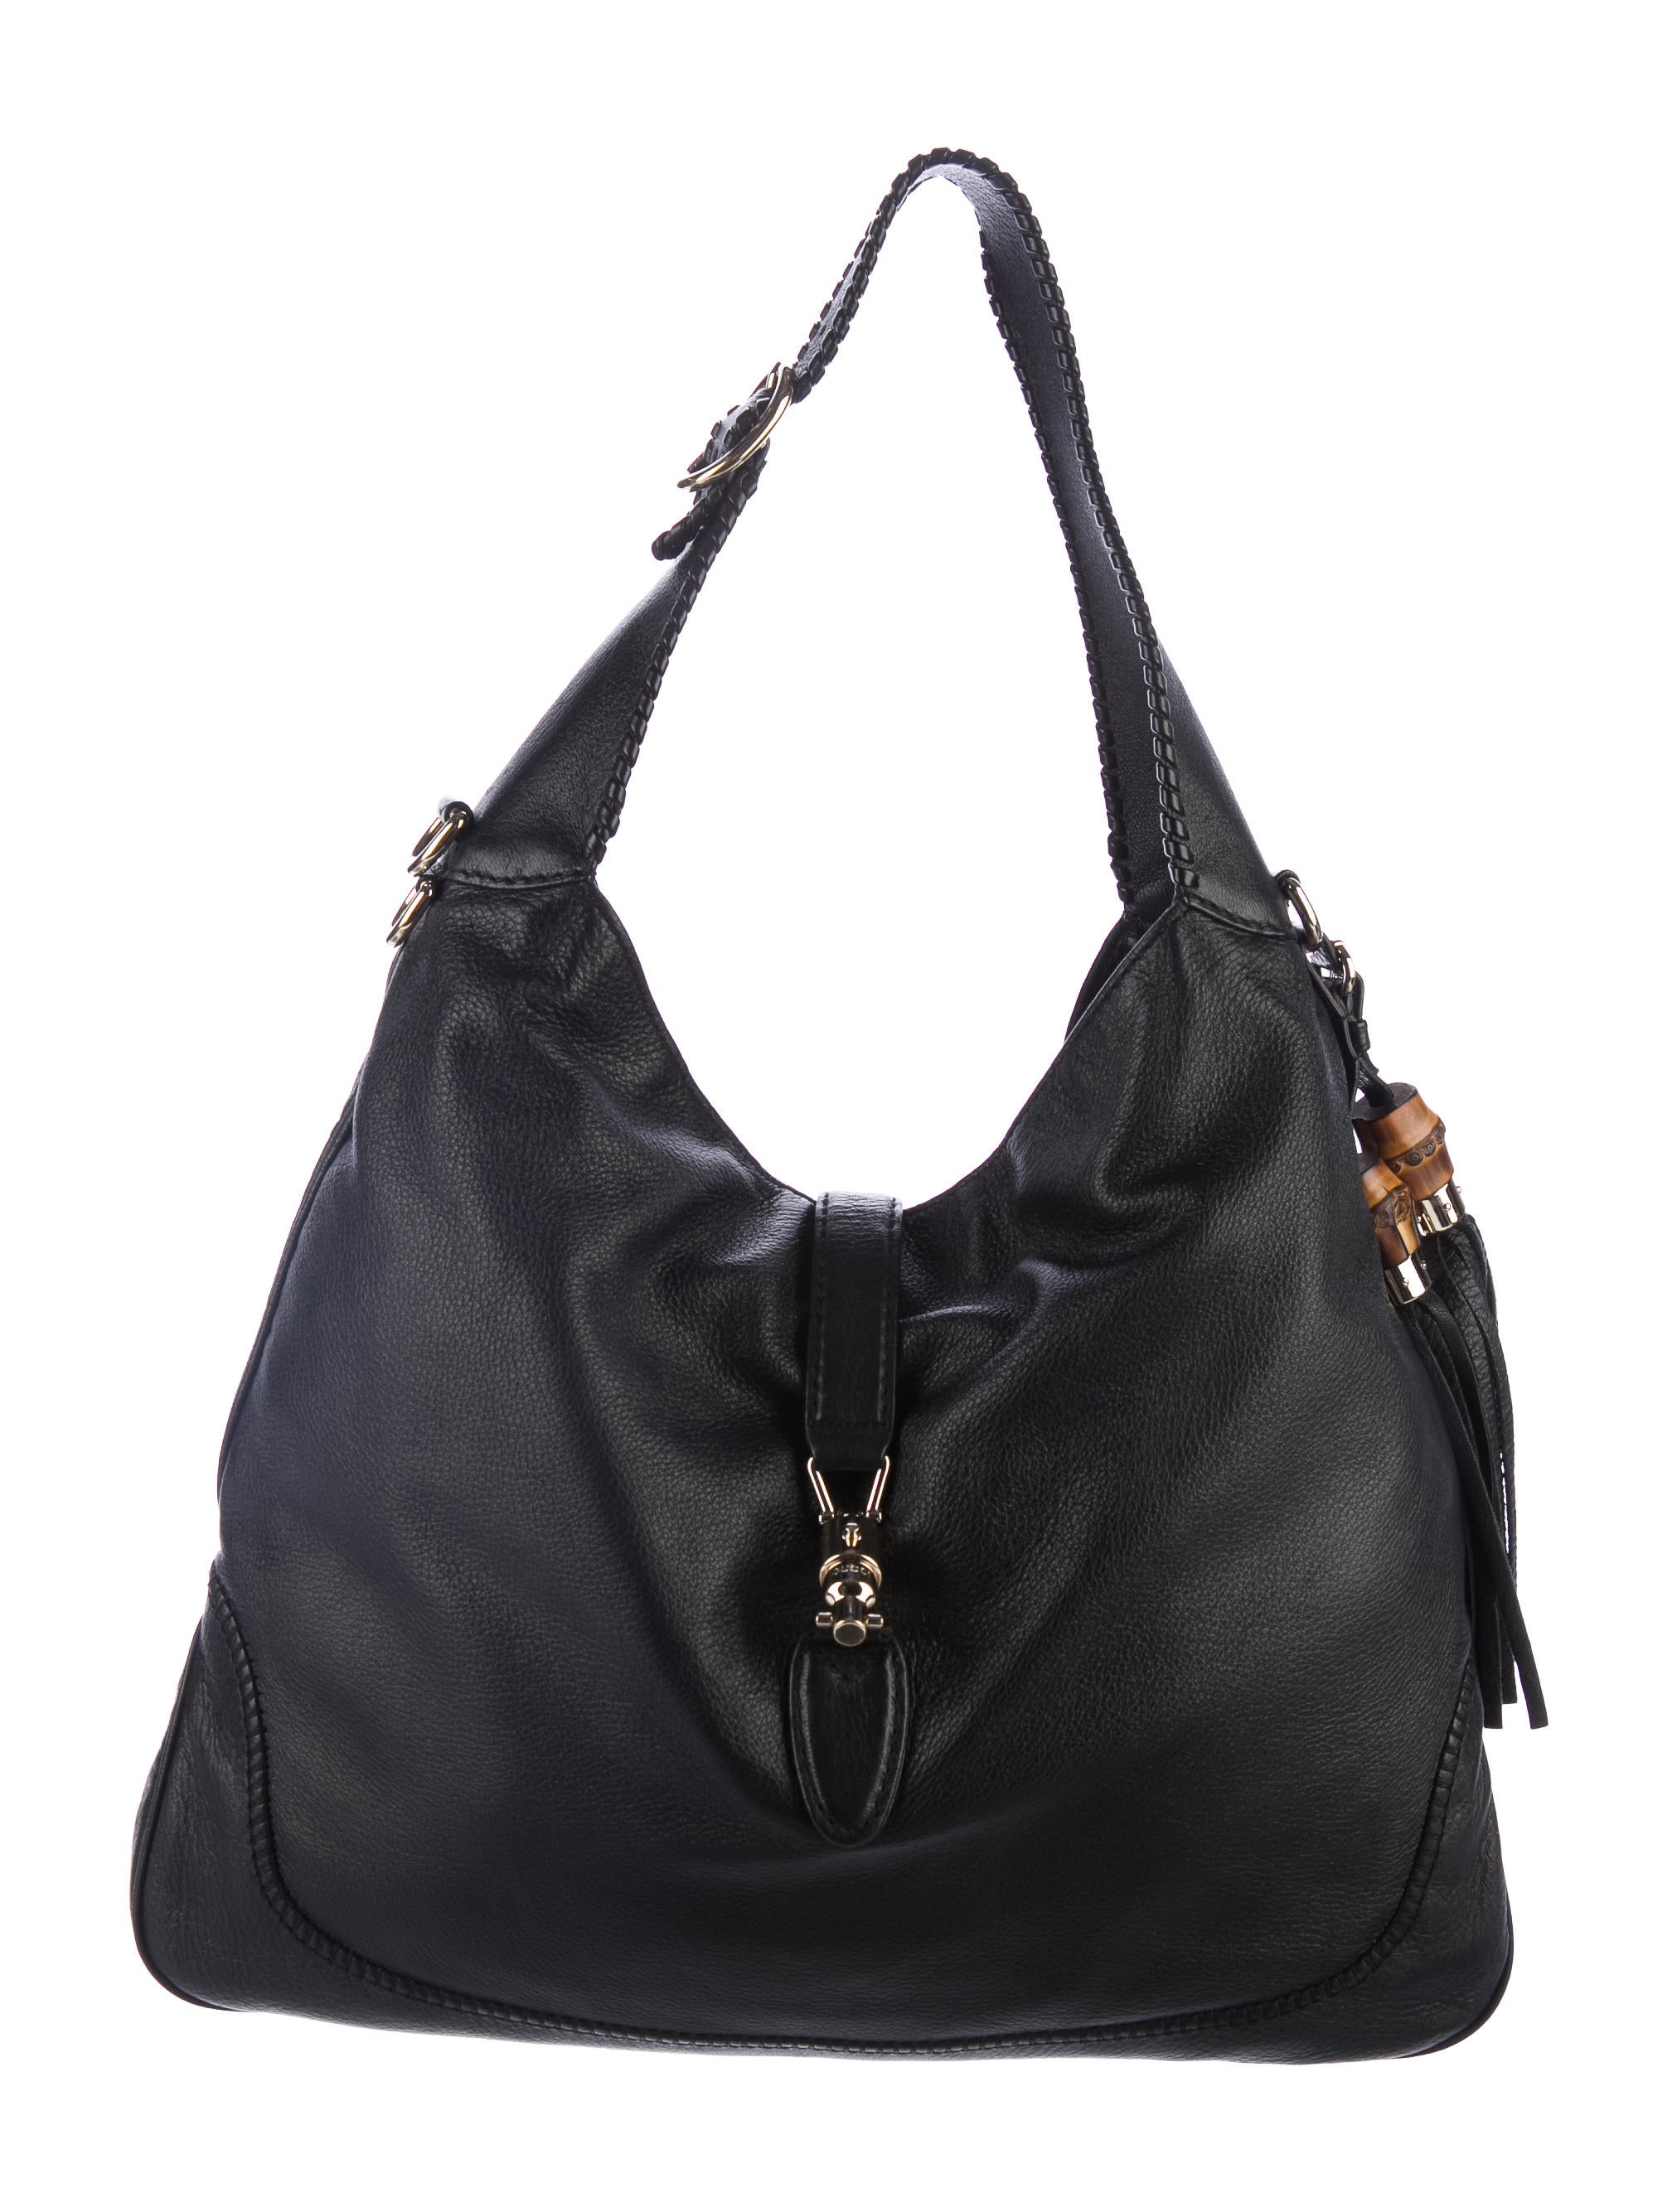 d39d6eb8a56e Gucci New Jackie Hobo Bag | Stanford Center for Opportunity Policy ...